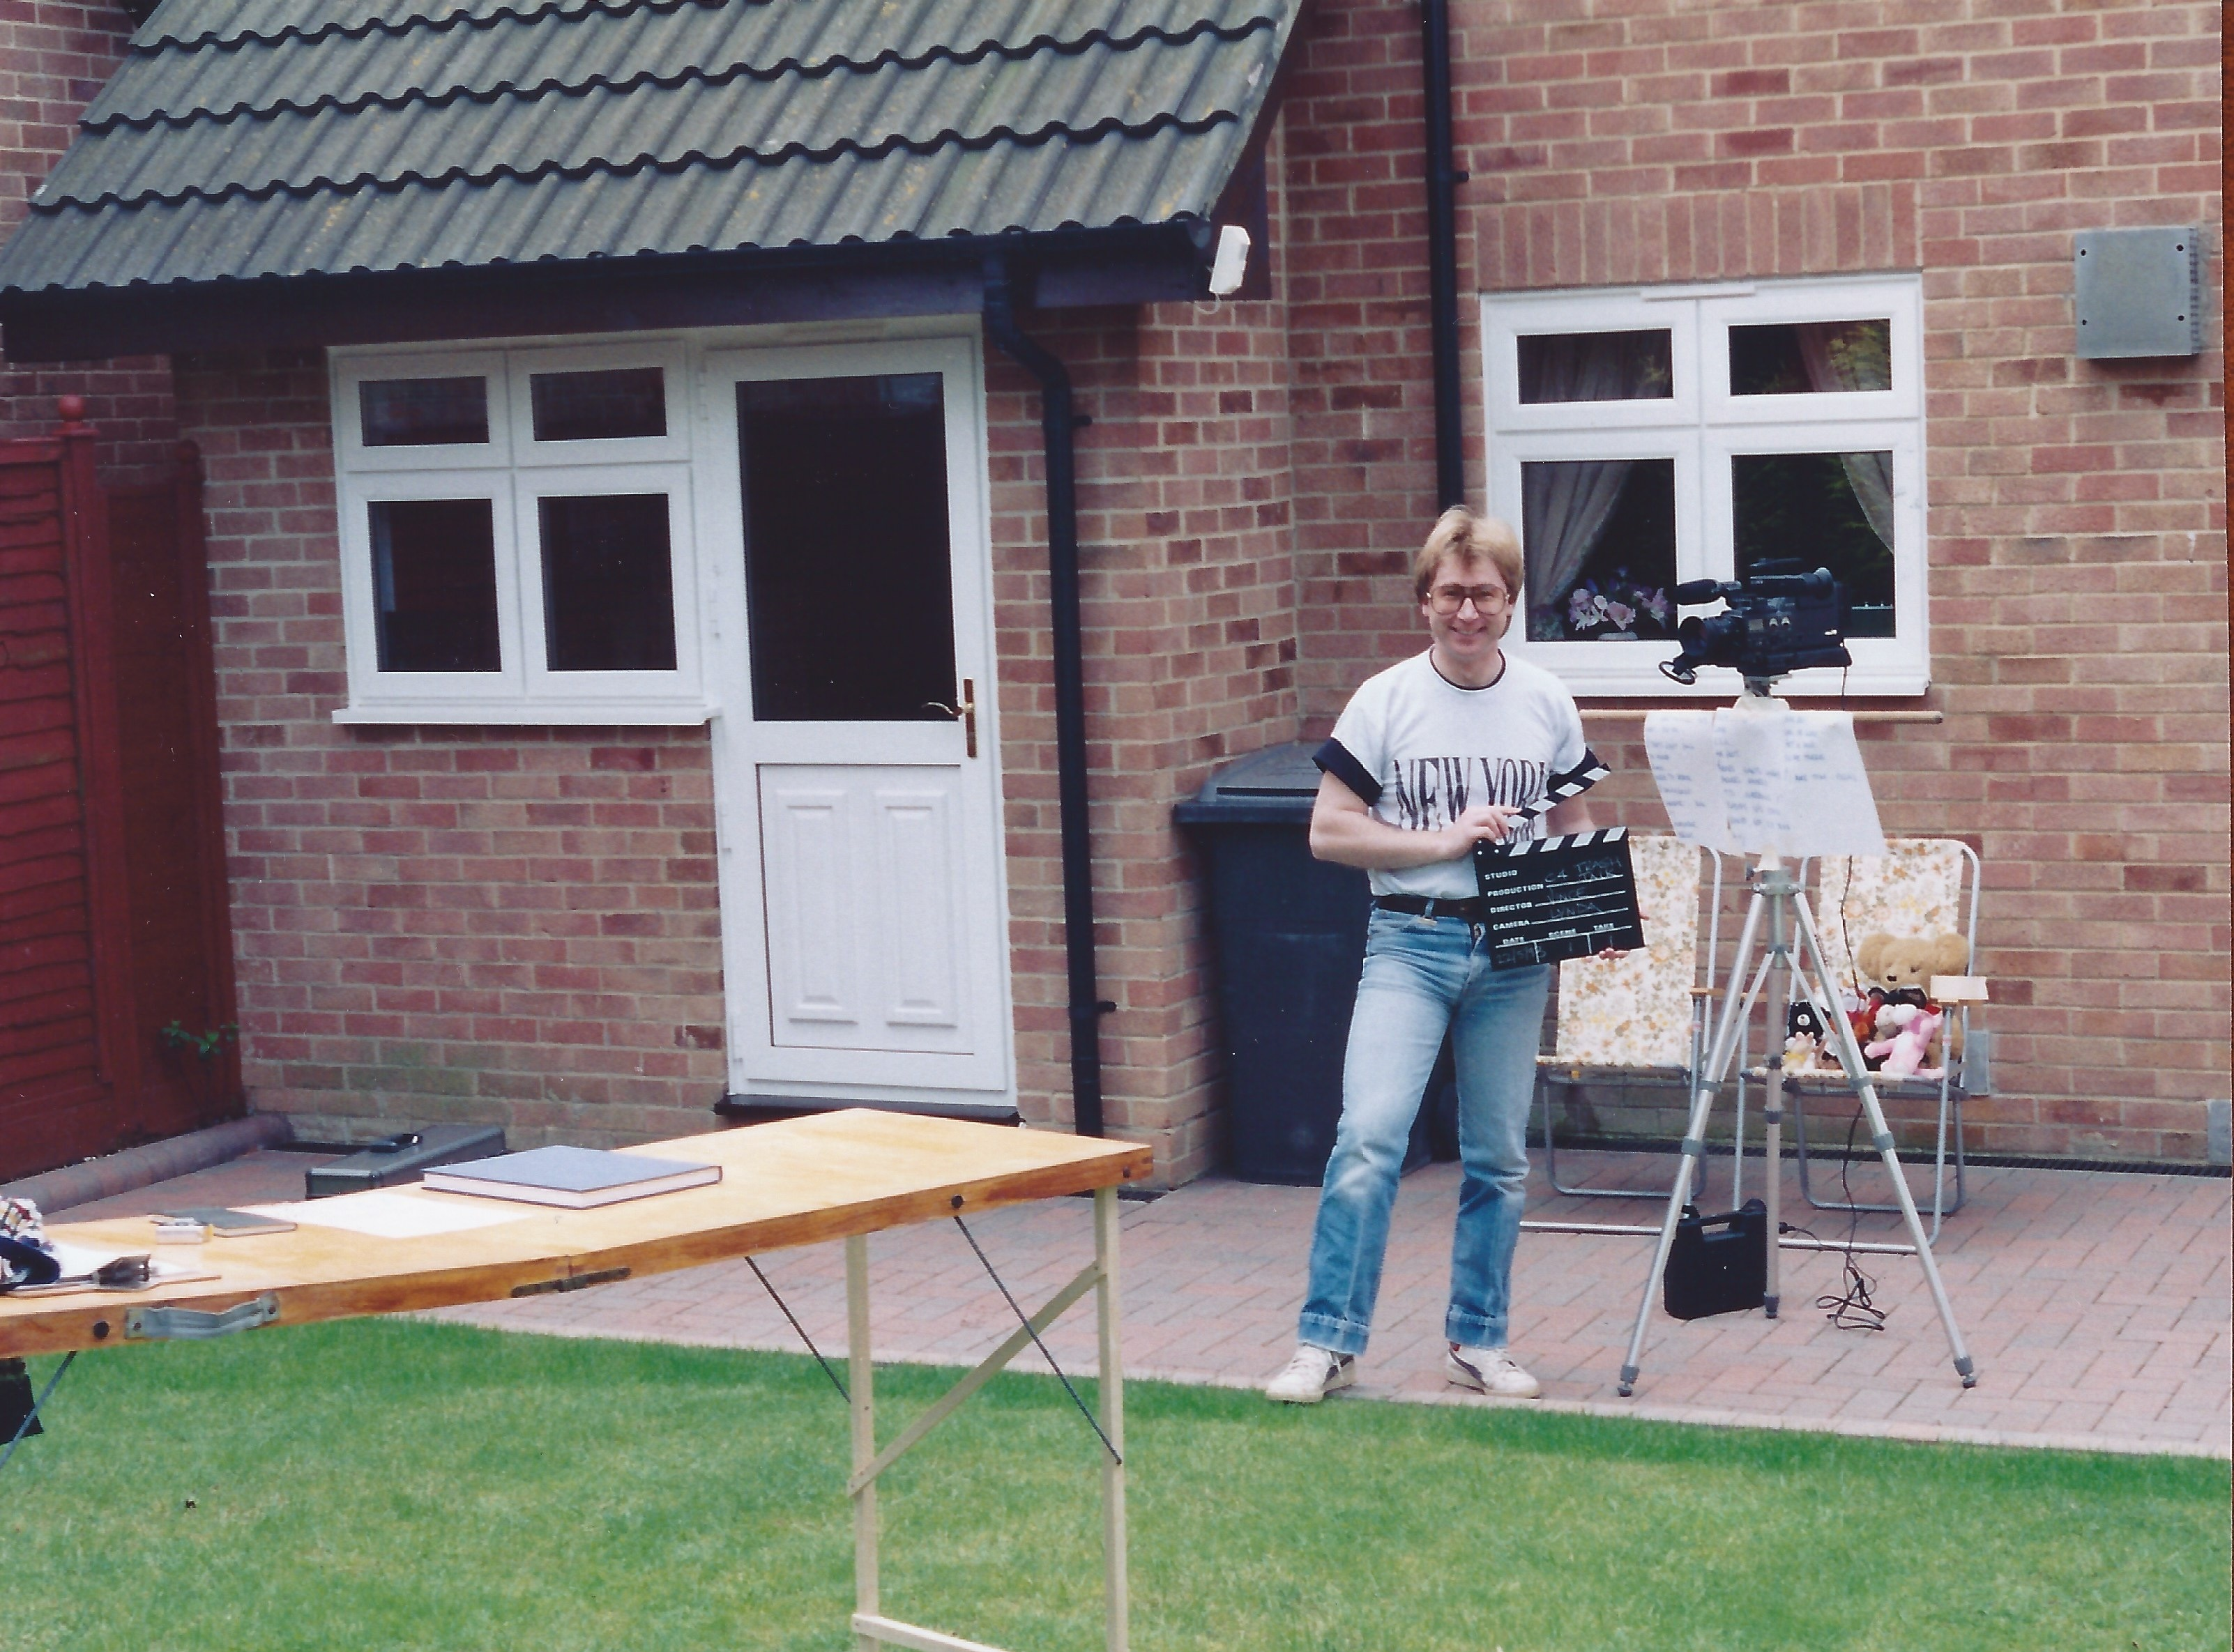 Image of the author in his back garden holding a clapperboard, next to a tripod mounted classic shoulder mount camcorder, next to a wallpaper table on which is a clipboard a book.  In the background two deck chairs and some soft toys